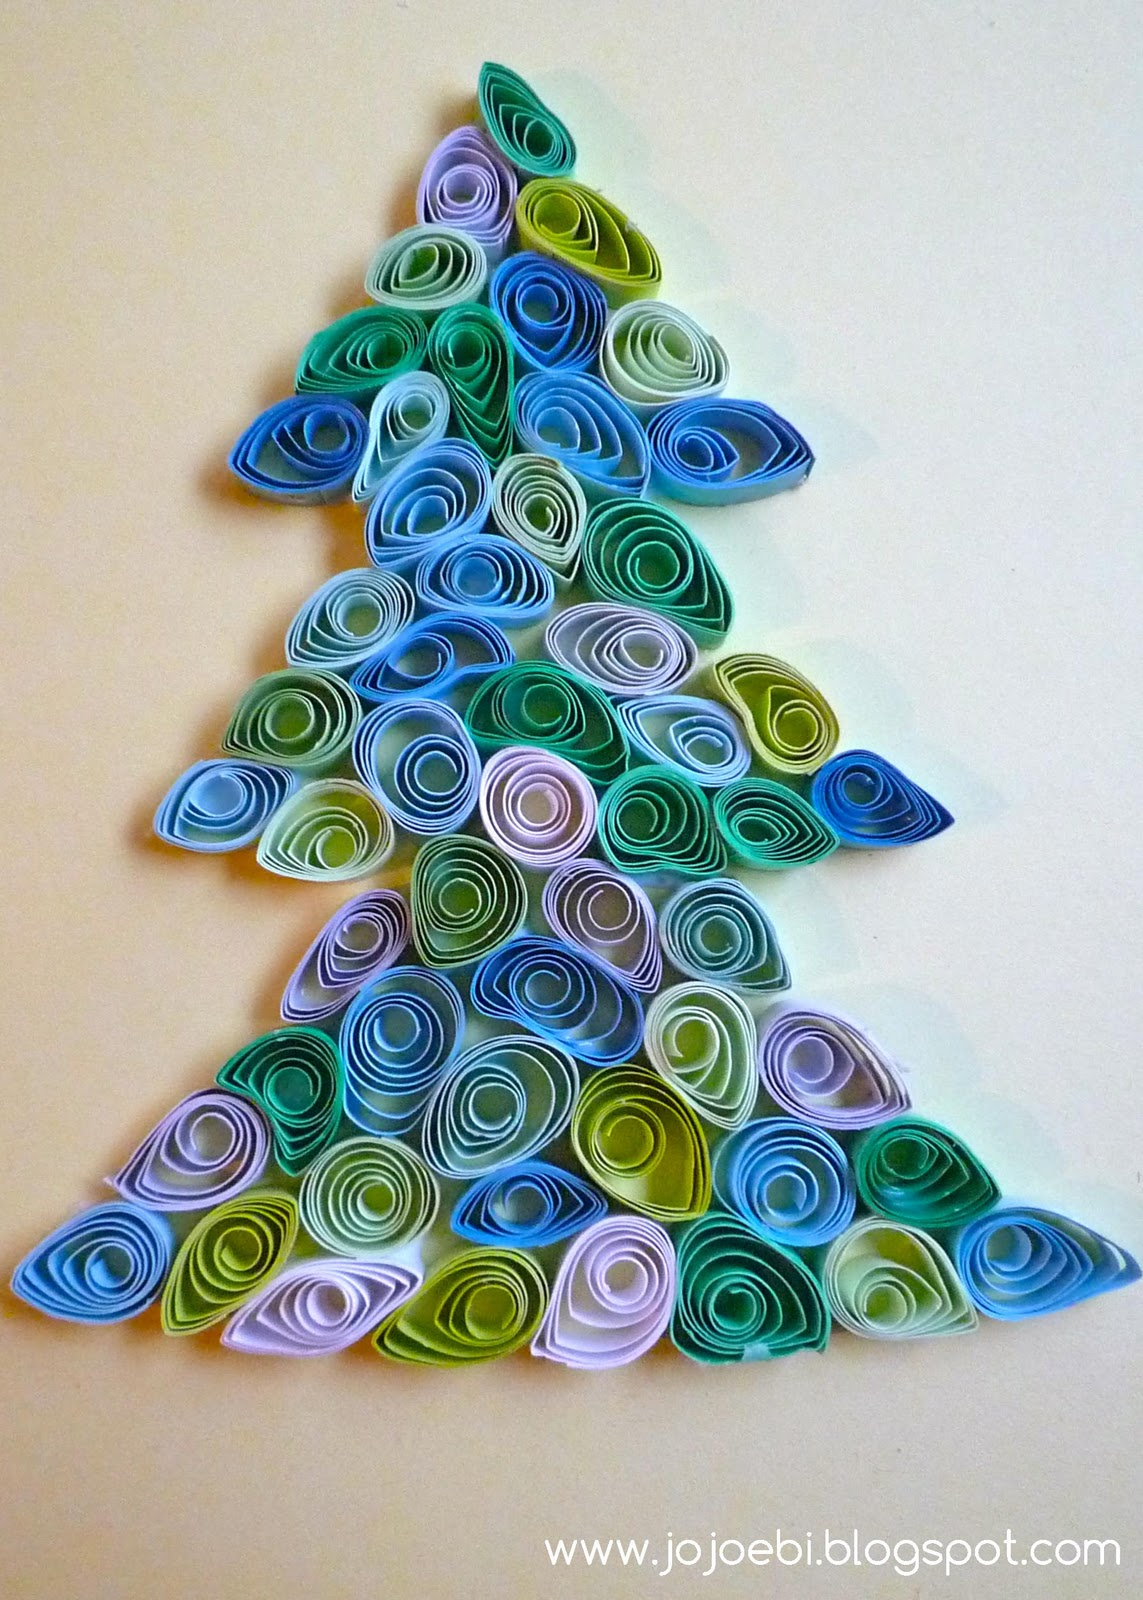 jojoebi designs quilling a cheap and easy project